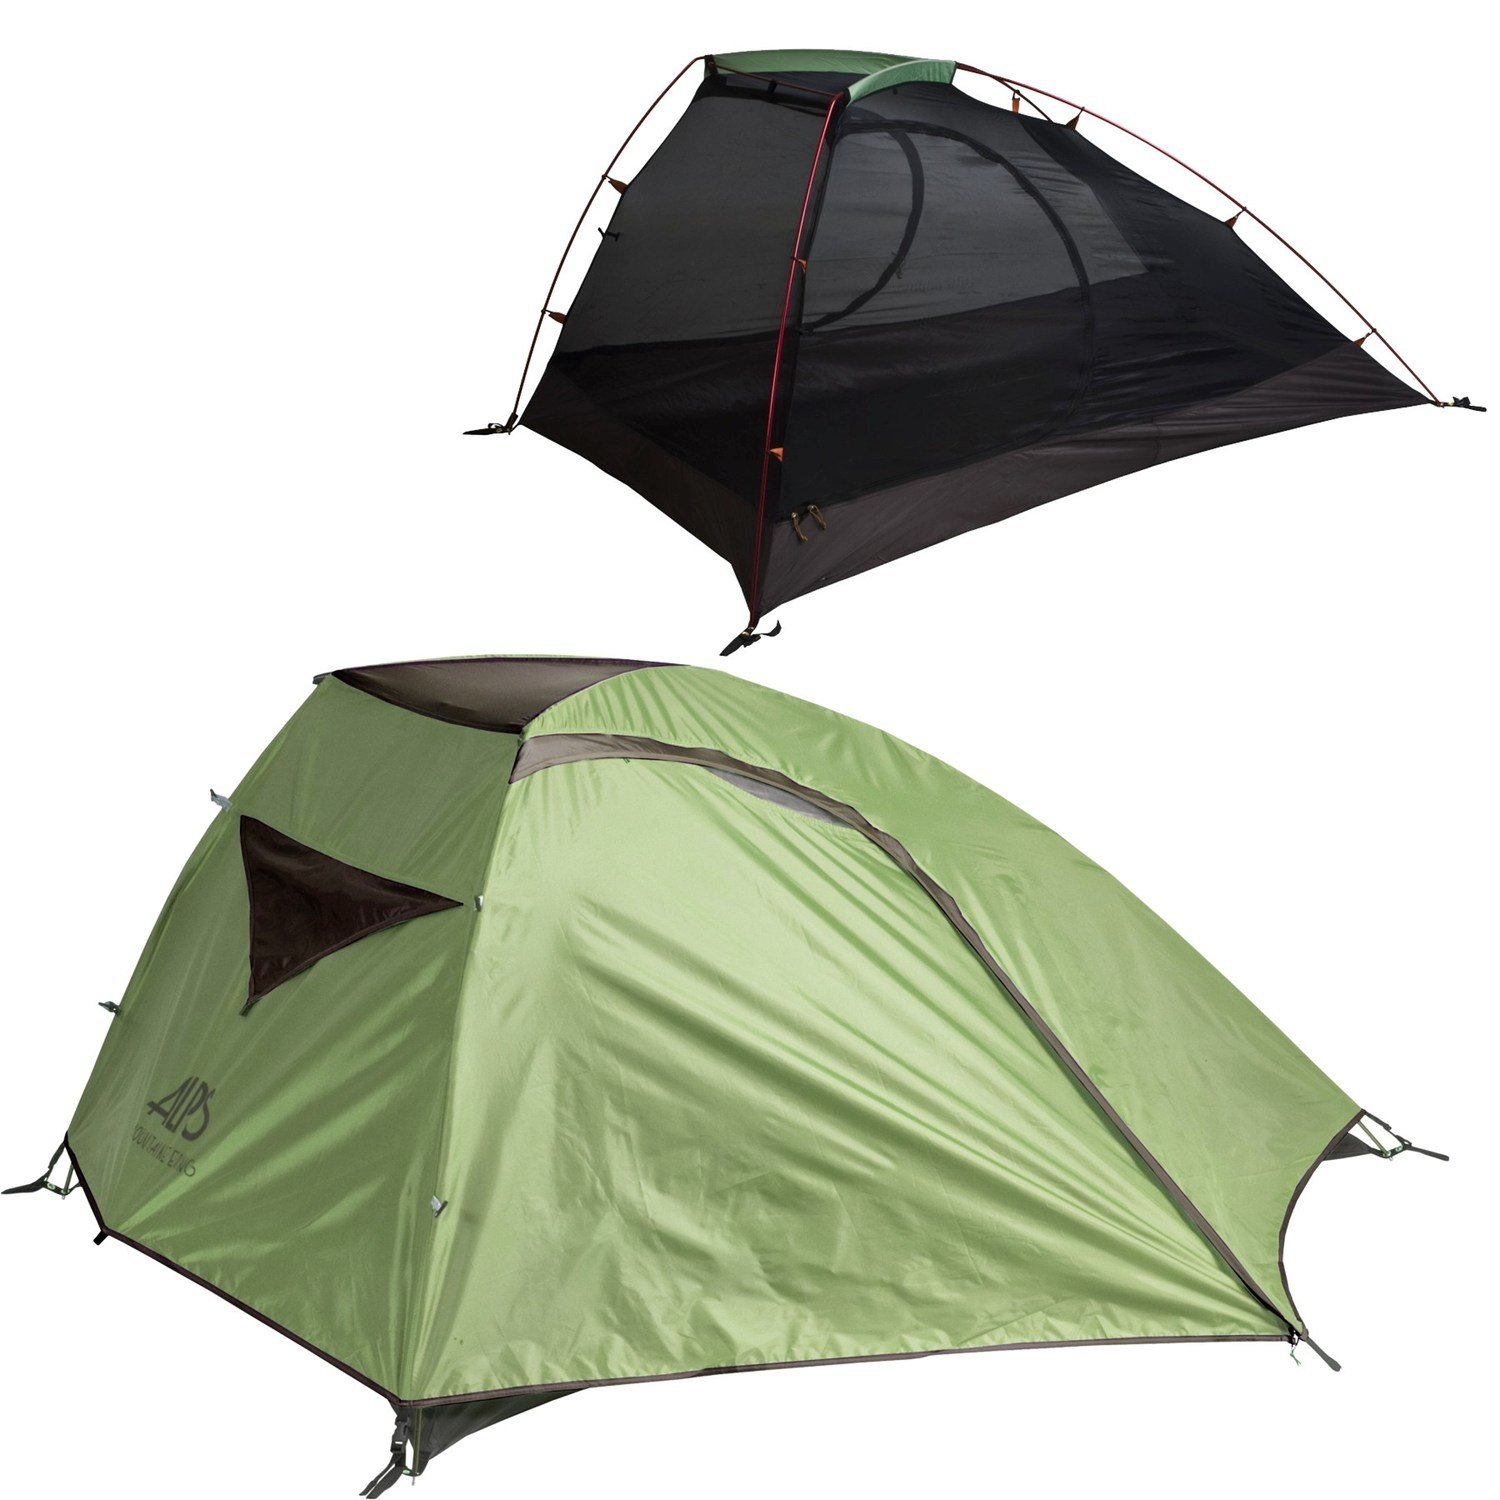 ALPS Mountaineering Zephyr / Zenith 2 Person Backpacking Tent